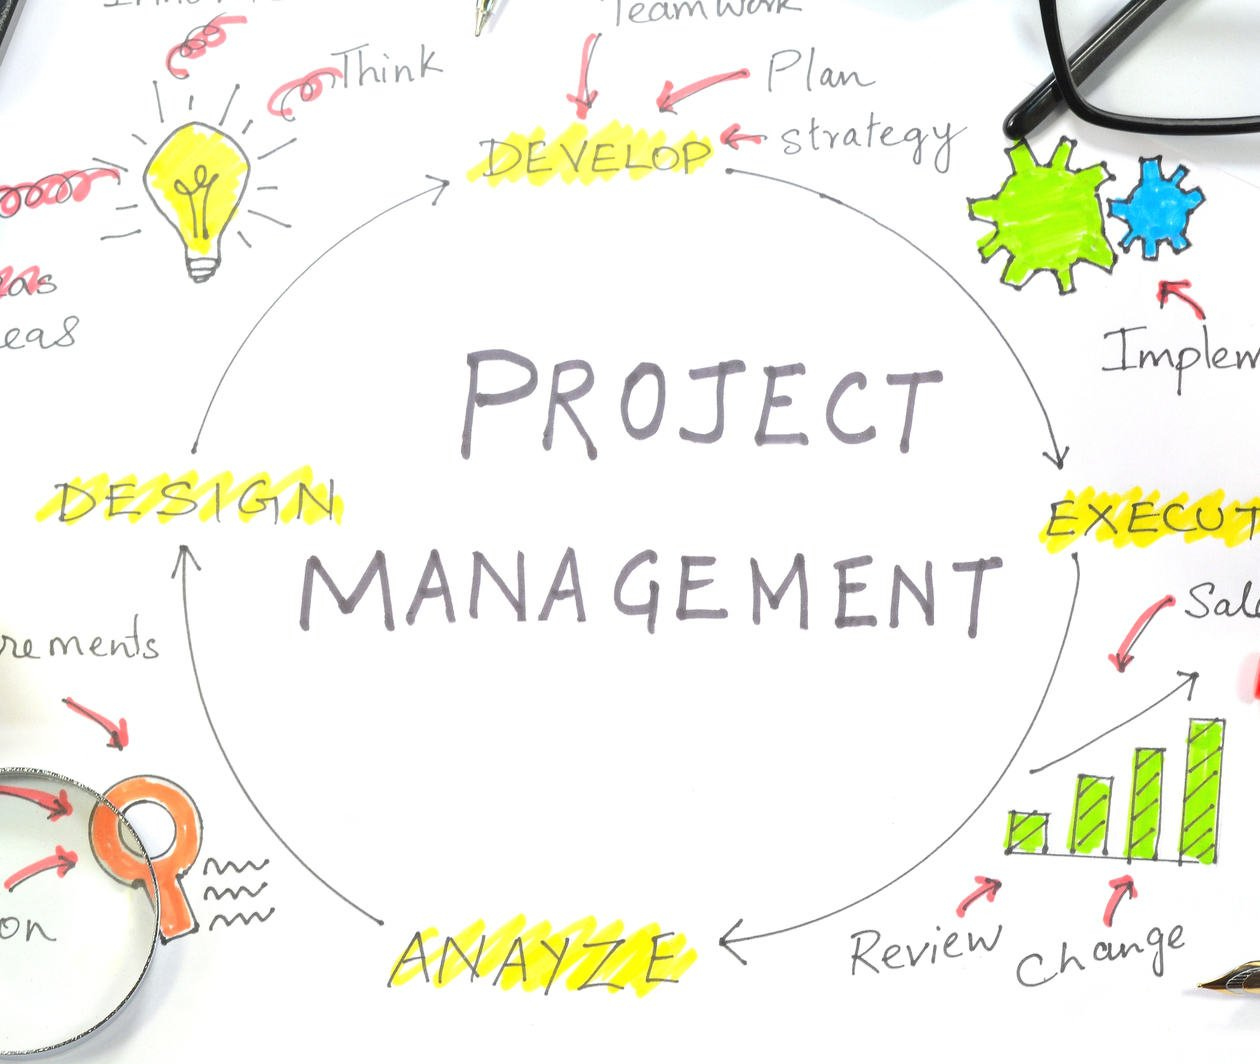 Project Planning and Communication